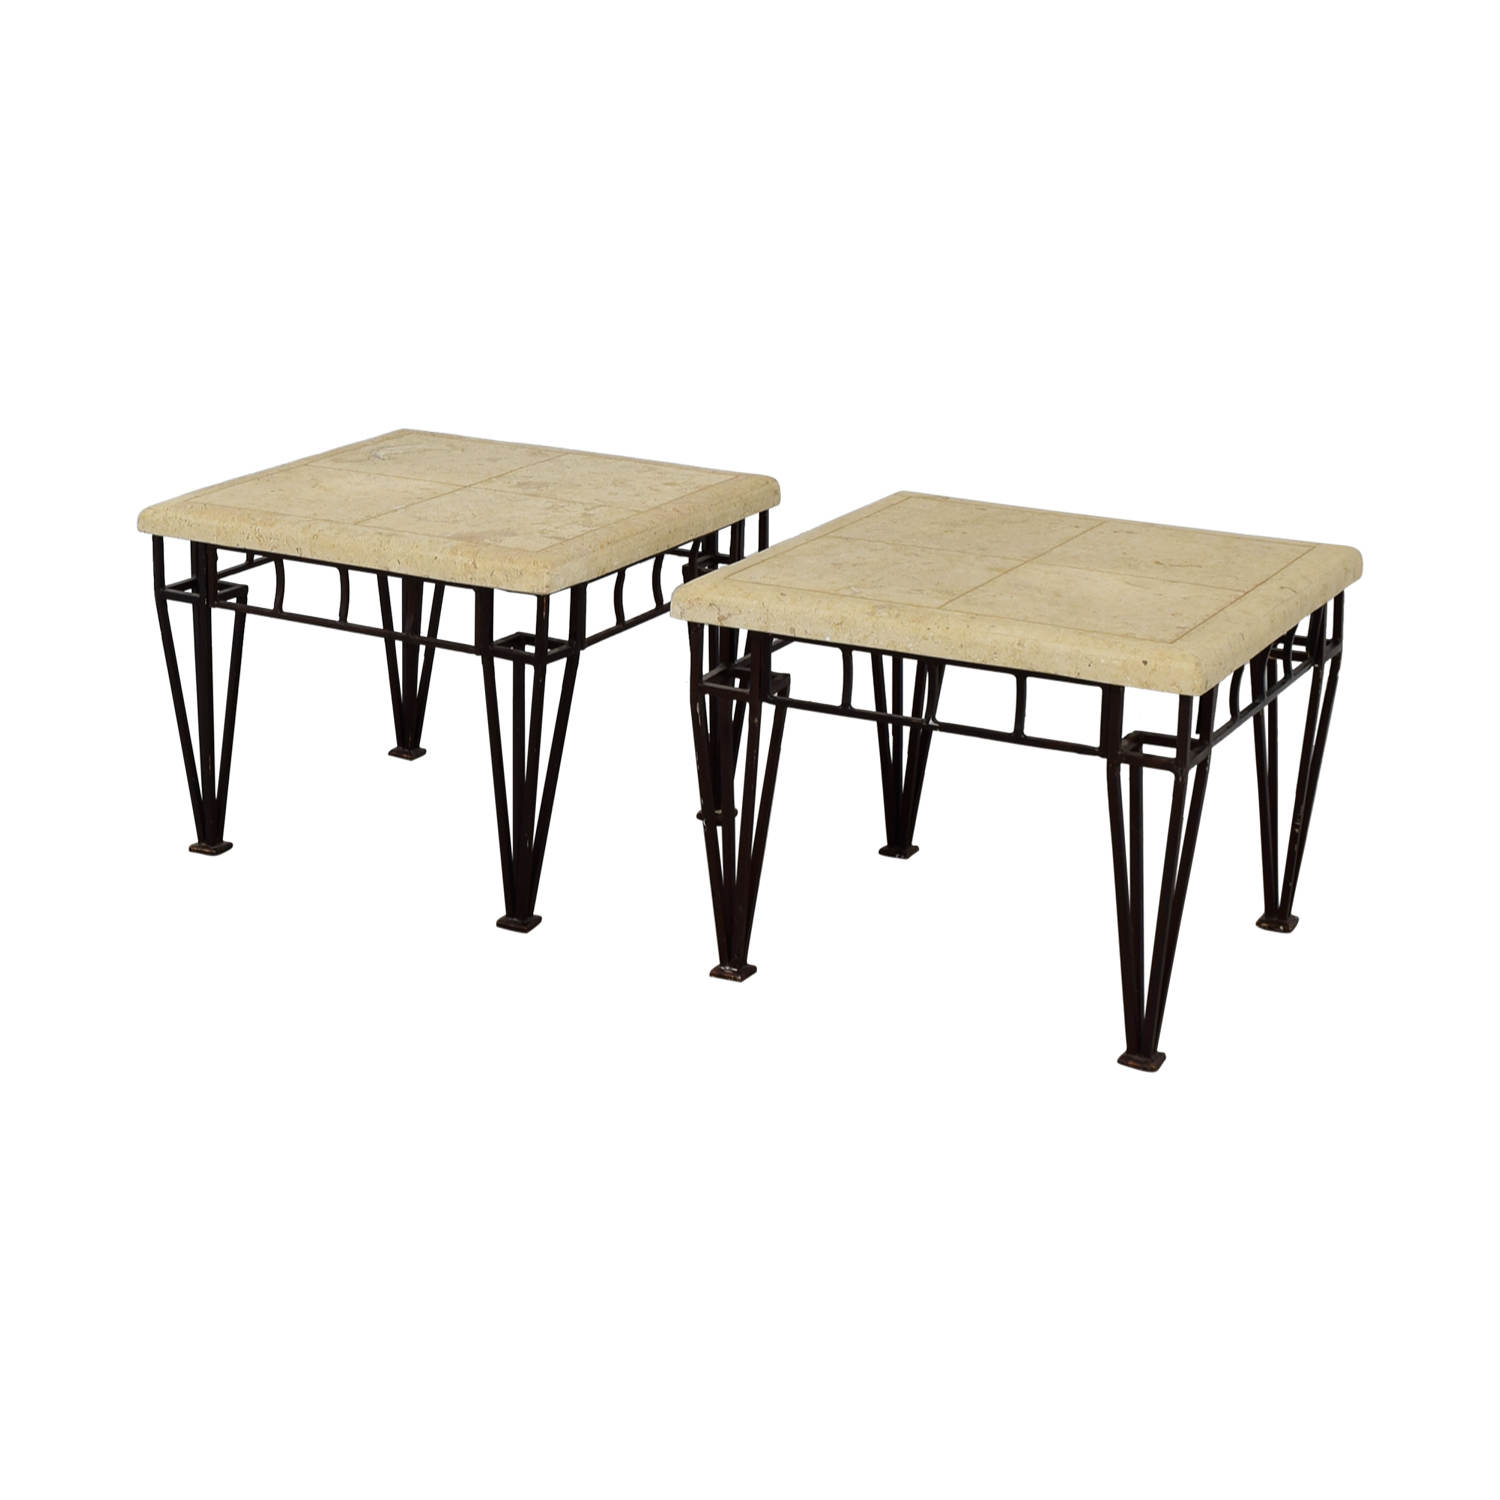 Stone Top End Tables nj